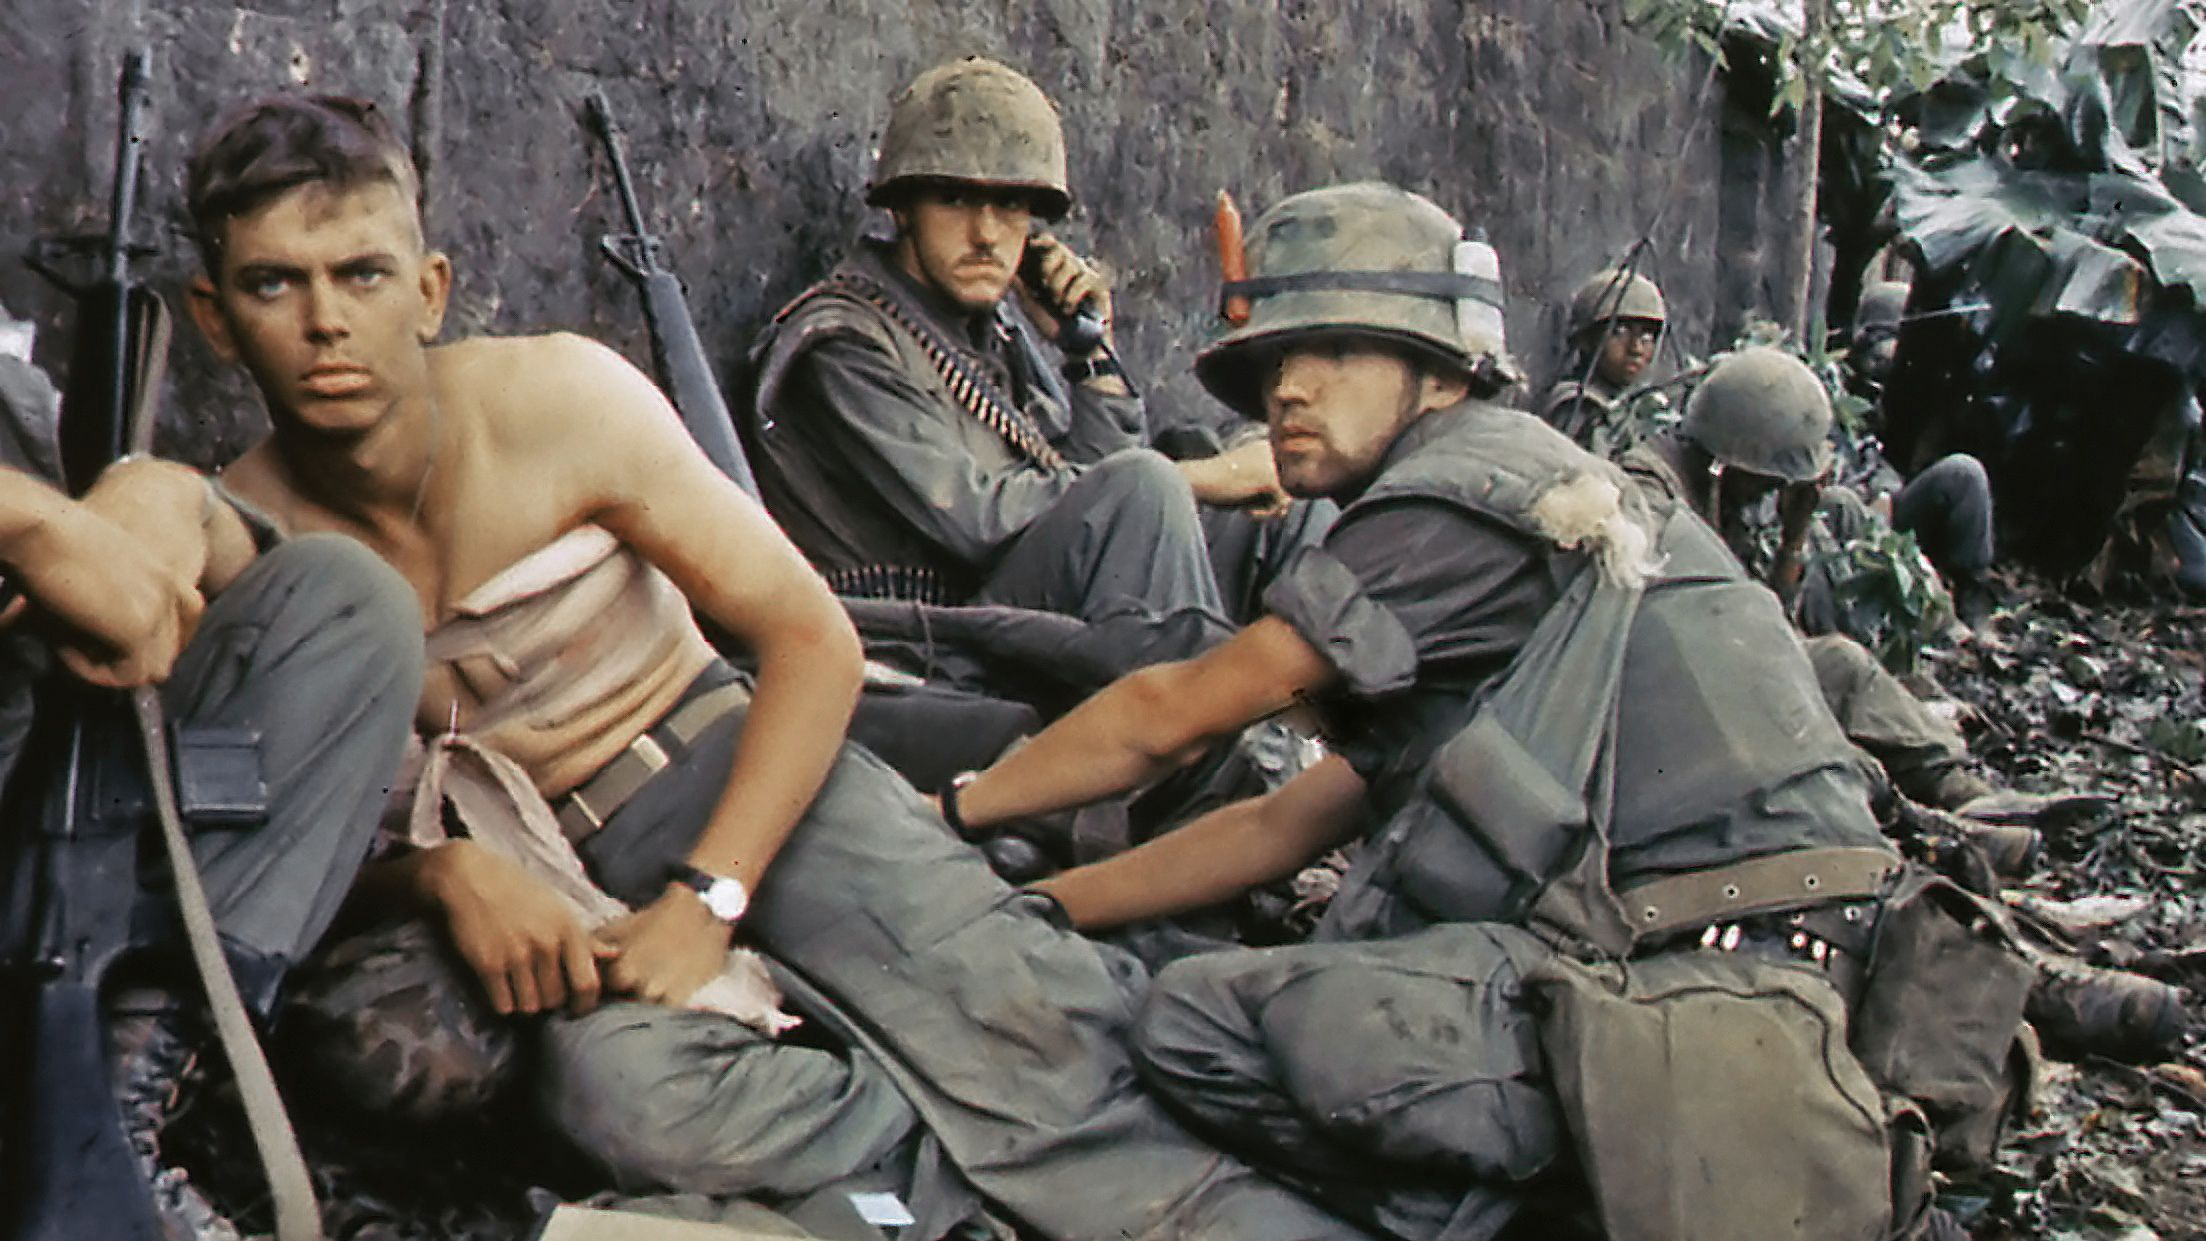 what was the single most important lesson the american people learned from vietnam